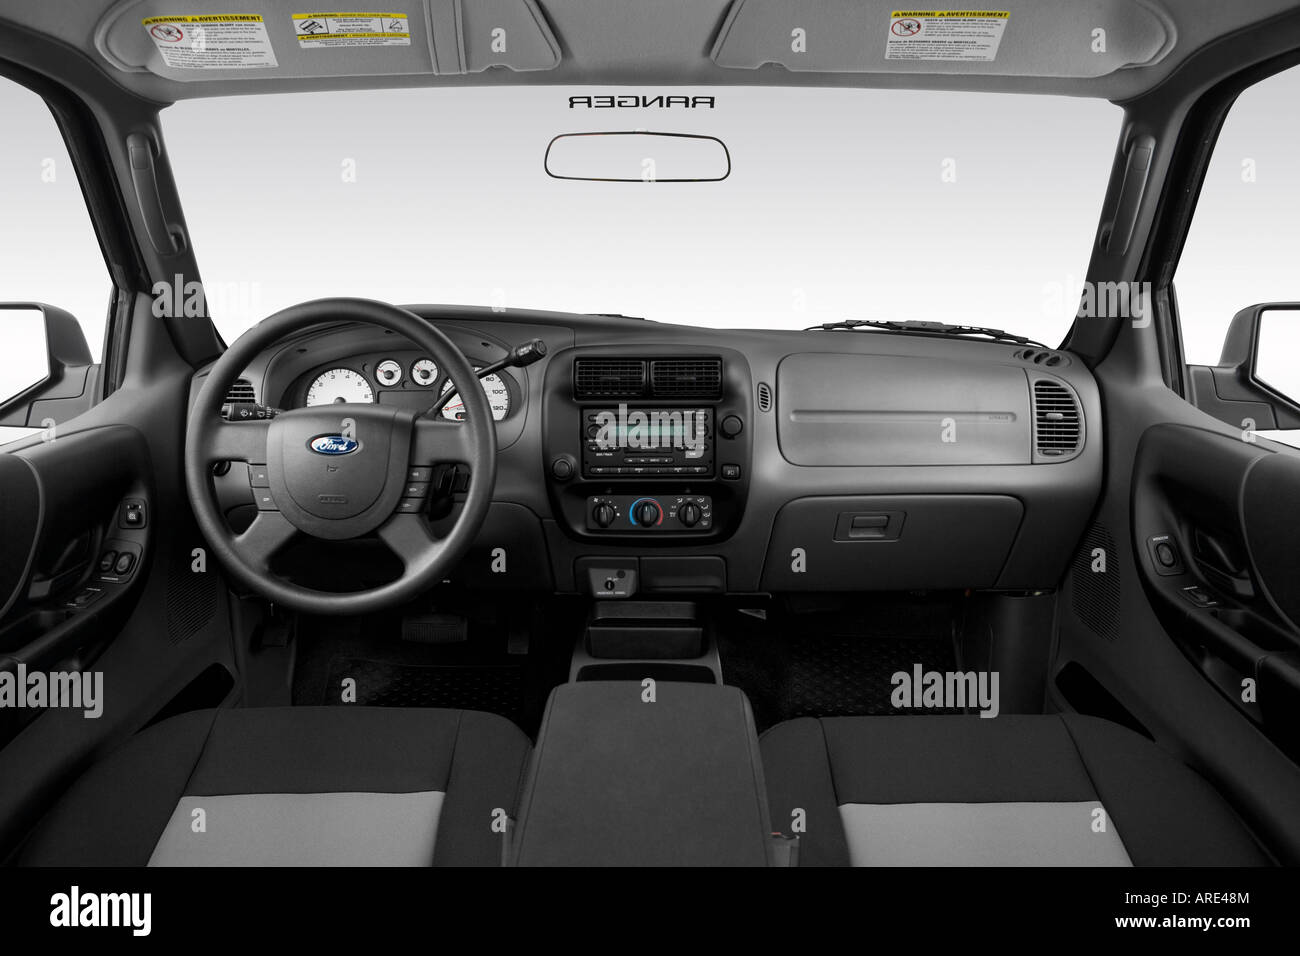 2006 Ford Ranger Sport in Gray - Dashboard, center console ...